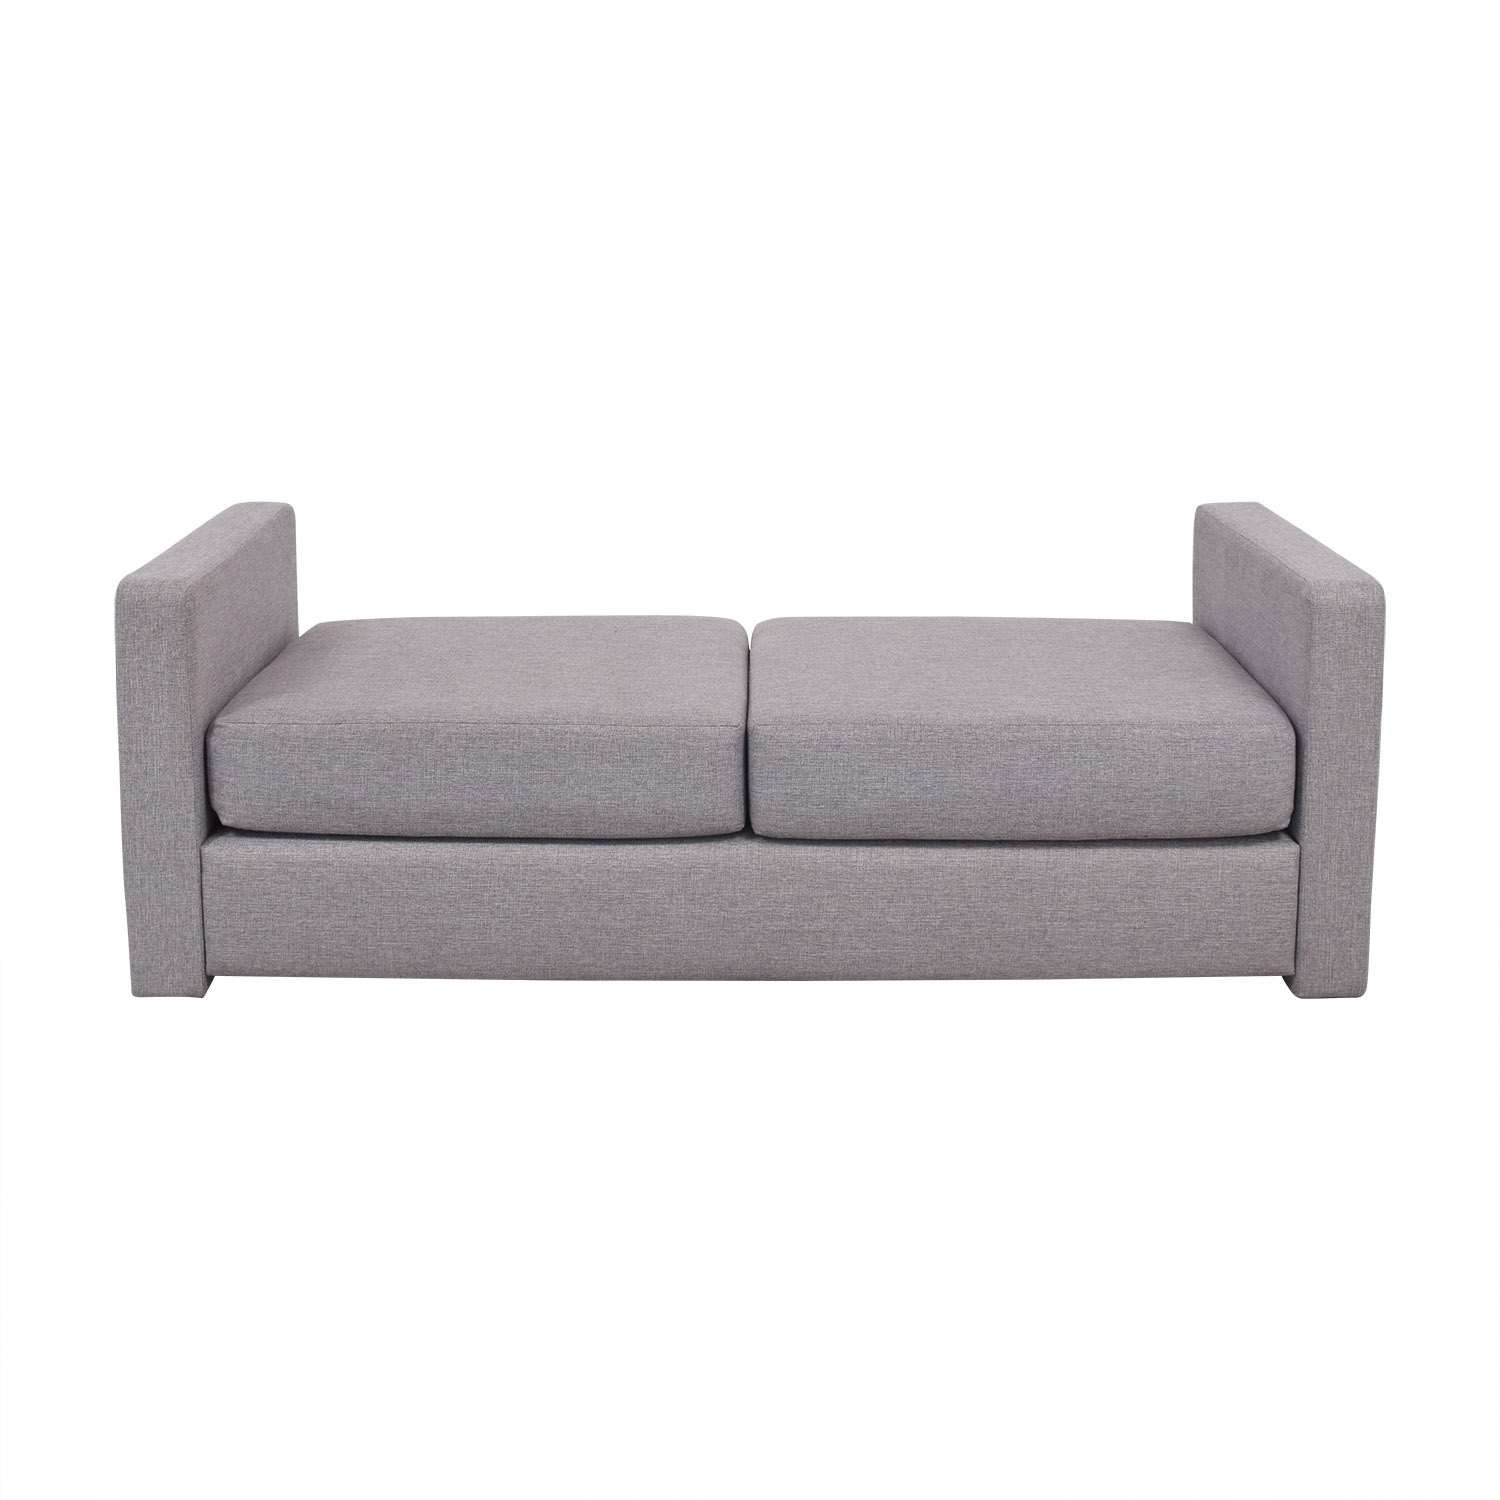 Breda Modern Backless Daybed Sofa nj